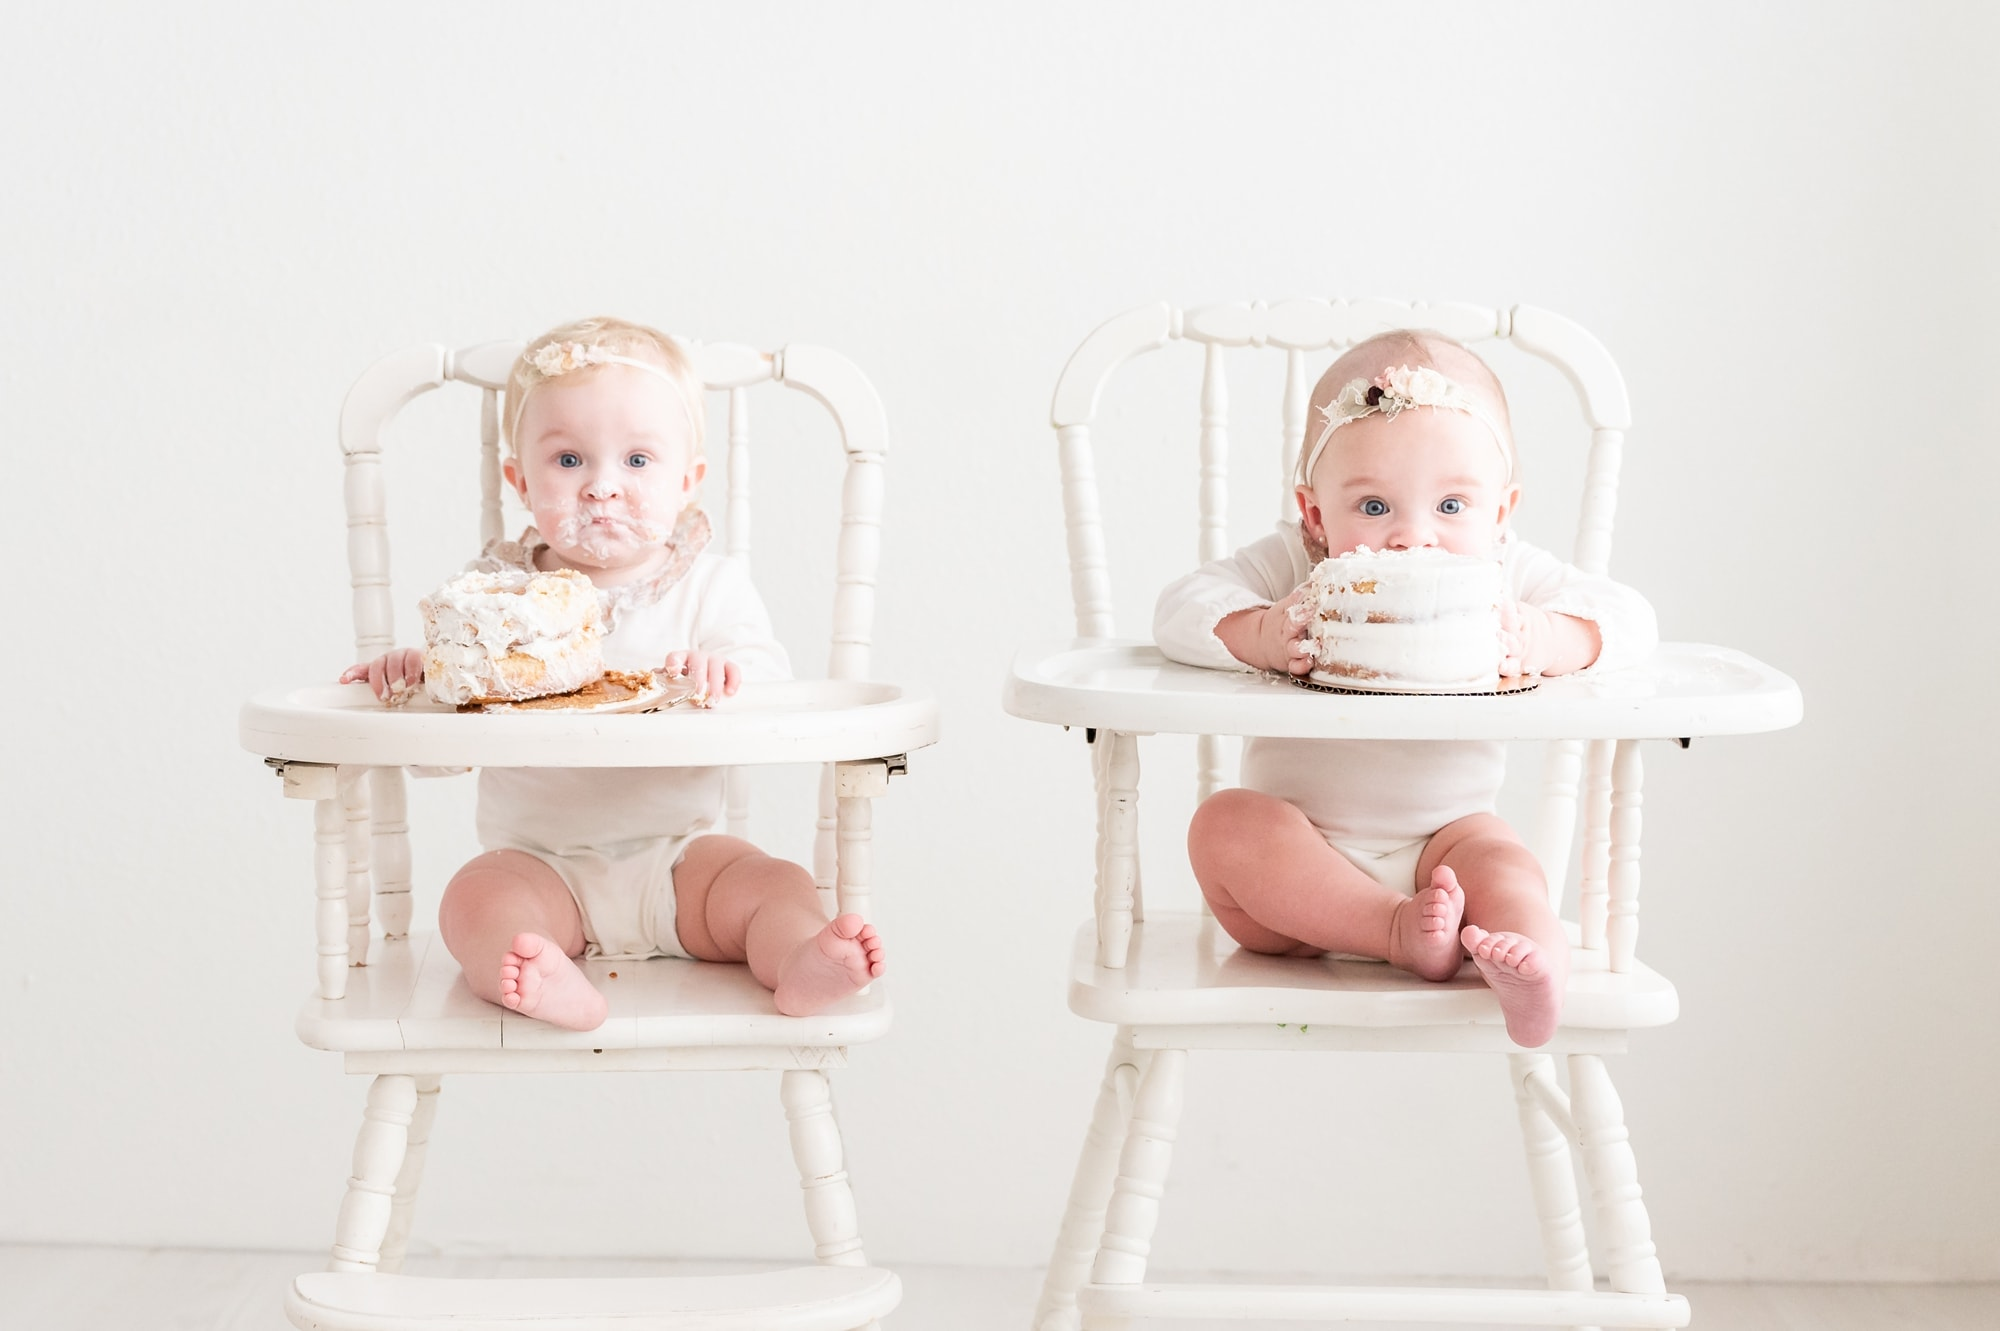 Twins digging into cake smash during first birthday milestone session. Photo by Dallas studio baby photographer, Aimee Hamilton Photography.